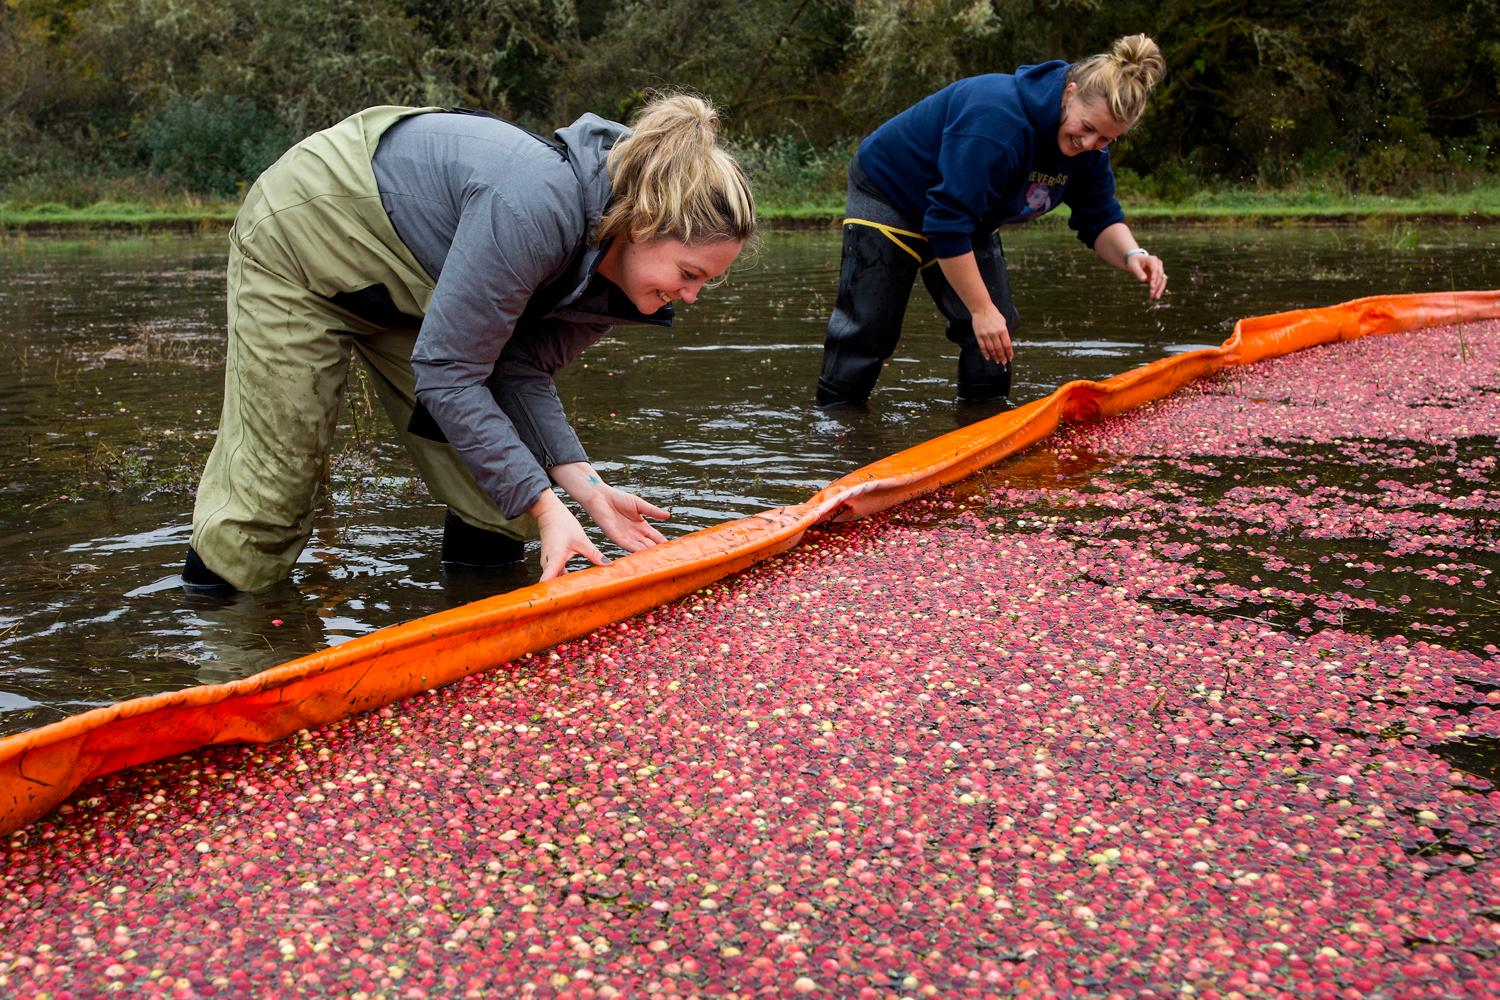 Volunteer Alisa Rudnick, left, Tiffany Turner, co-owner of Pickled Fish, help push the floating boom along to corral the floating berries during the annual harvest at Starvation Alley Farms. When the cranberries are ready to harvest, the farmers flood the bog, then use a machine to beat the vines that release the berries, which then float to the top. (Sy Bean / Seattle Refined)